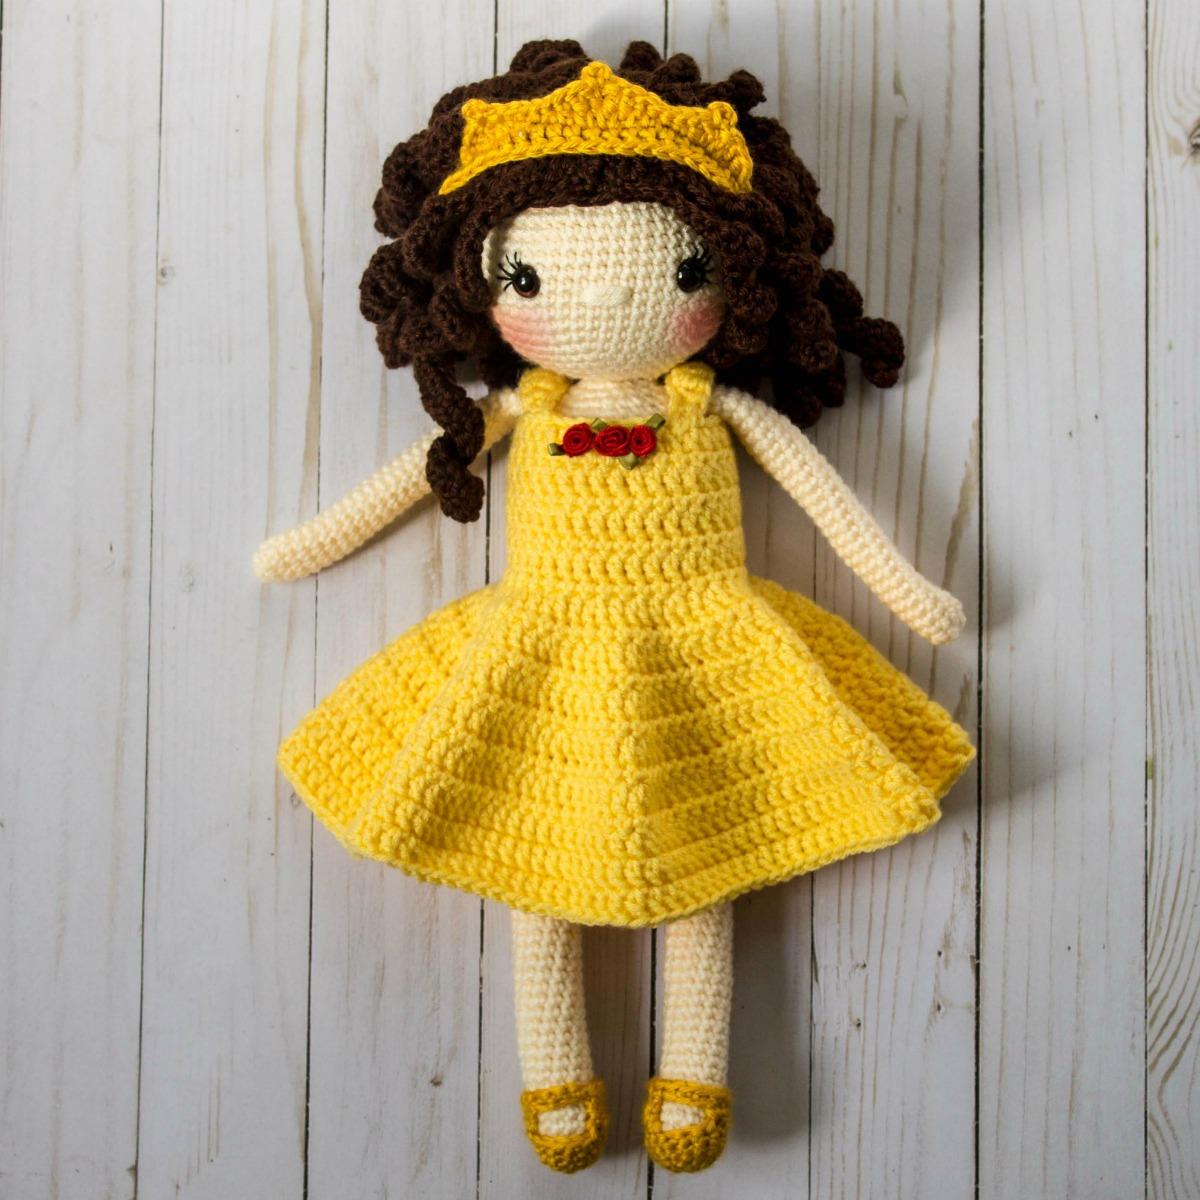 Crochet princess doll pattern thefriendlyredfox this is a good advanced beginner pattern i include a lot of tips and tricks for those new to amigurumi and can be helpful for those who already love it dt1010fo